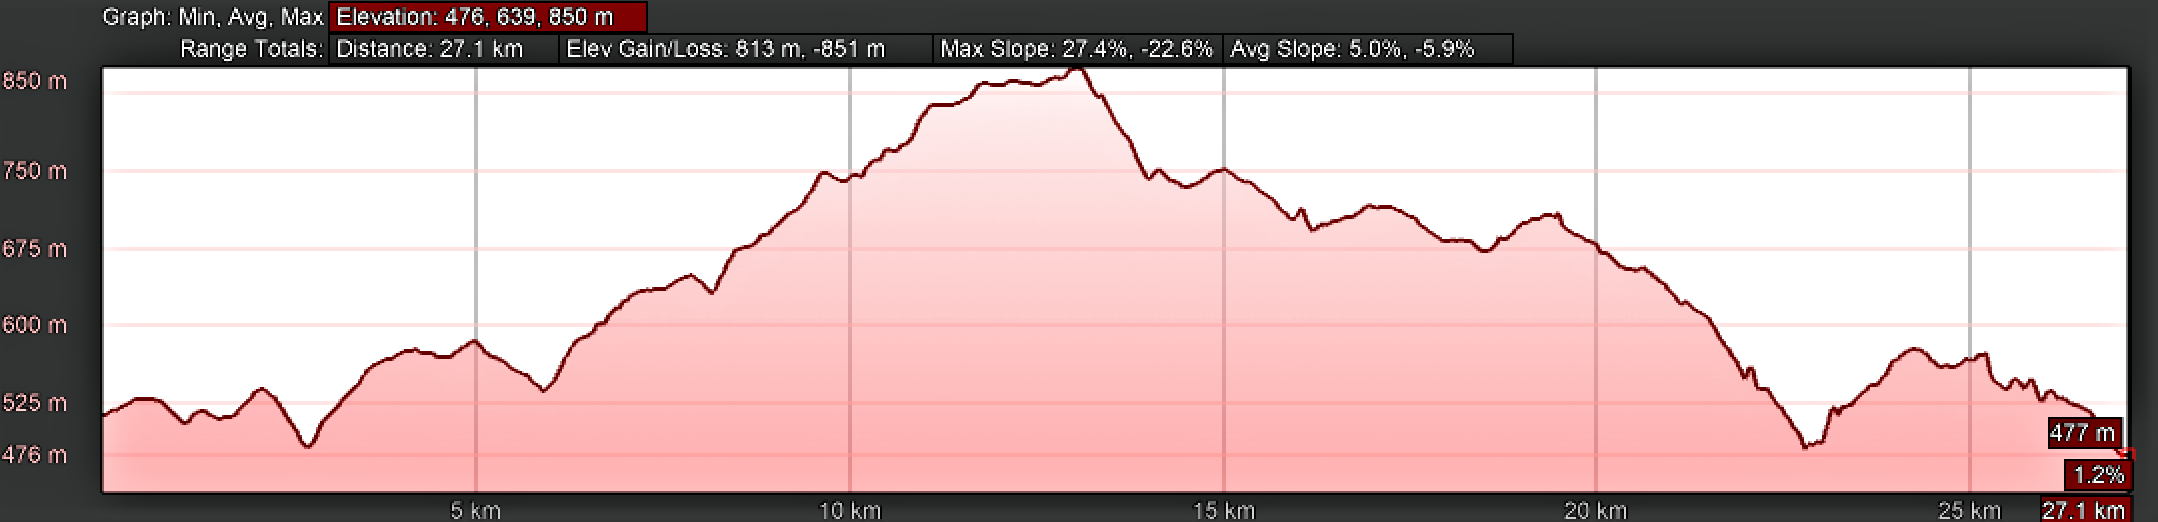 Elevation Profile, Camino Sanabrés, Cea to Estación de Lalín, Standard Route